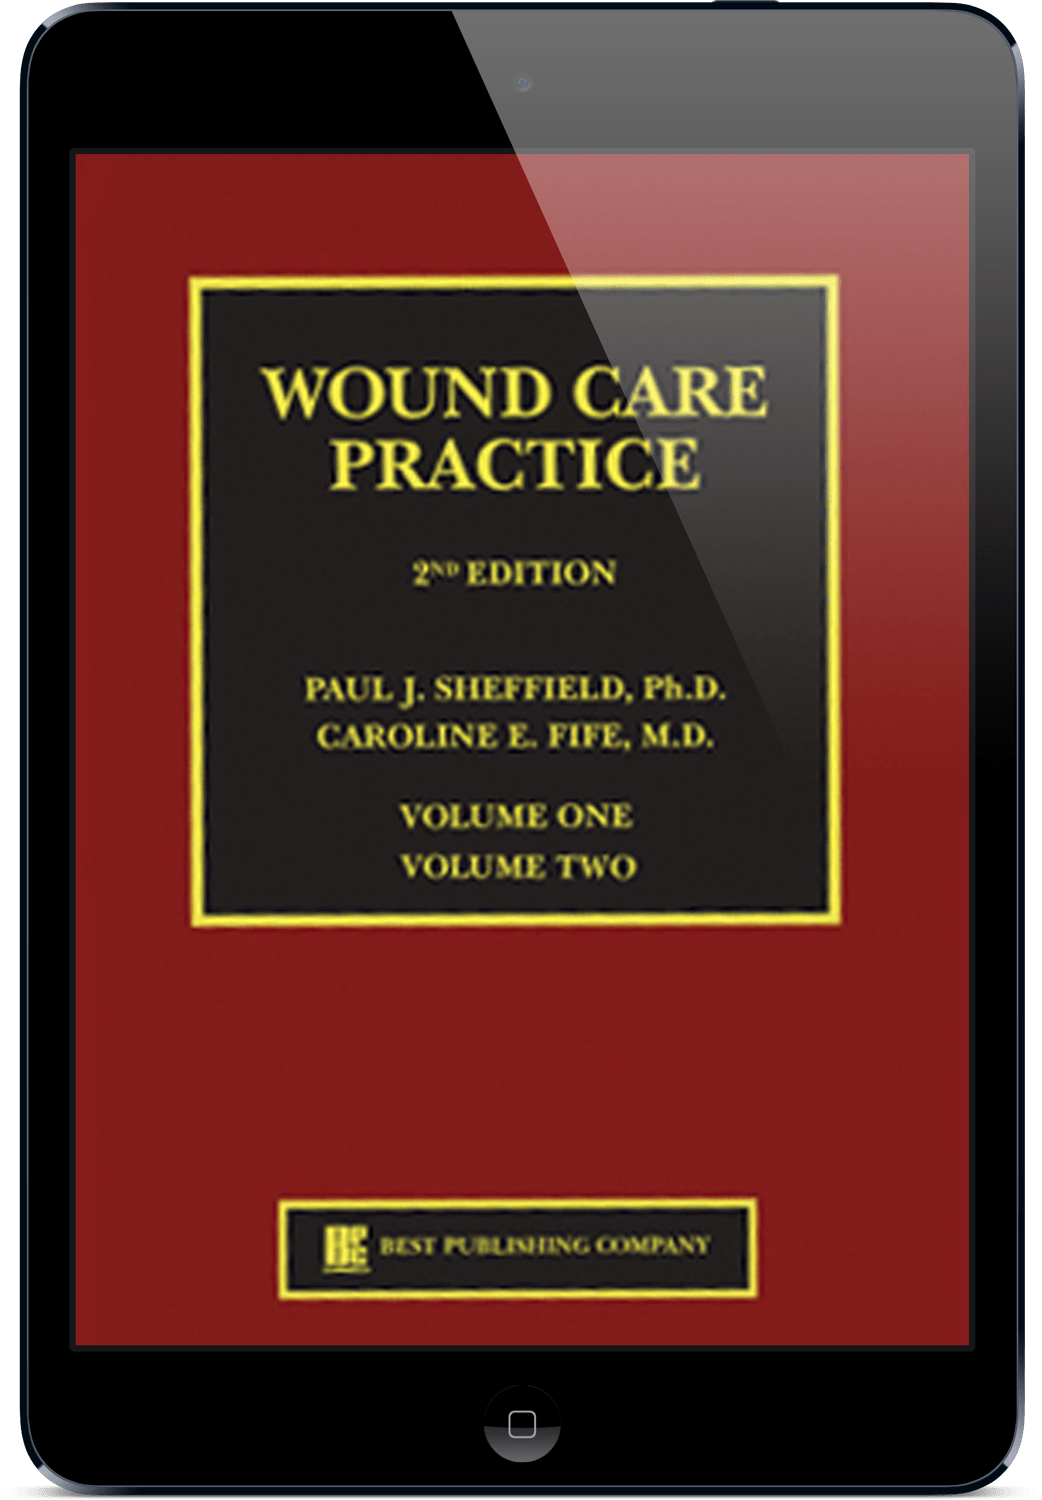 Best Publishing Company Ebook Wound Care Practice 2nd Edition